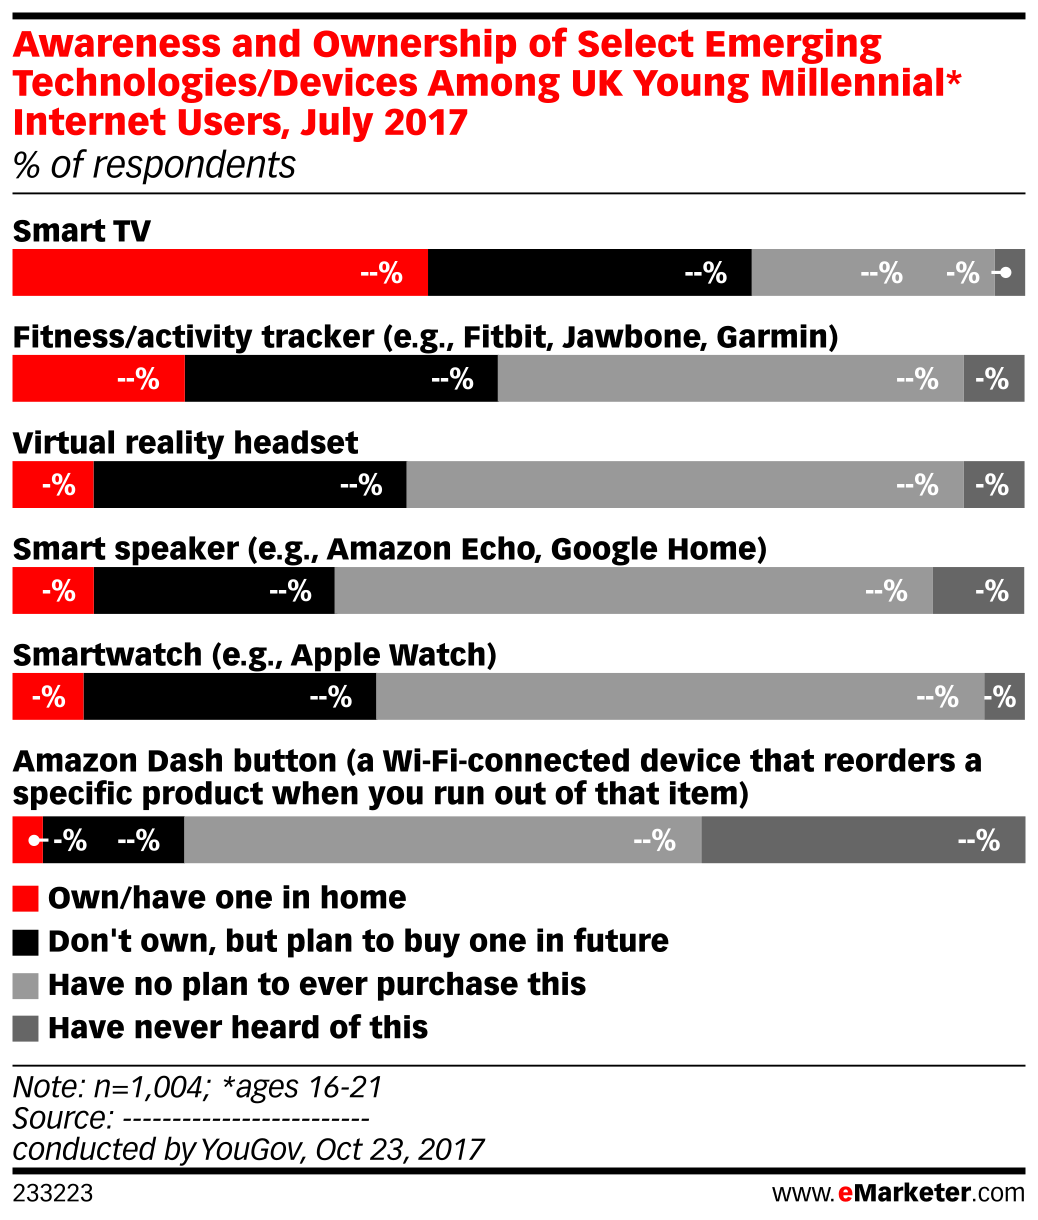 Awareness and Ownership of Select Emerging Technologies/Devices Among UK Young Millennial* Internet Users, July 2017 (% of respondents)